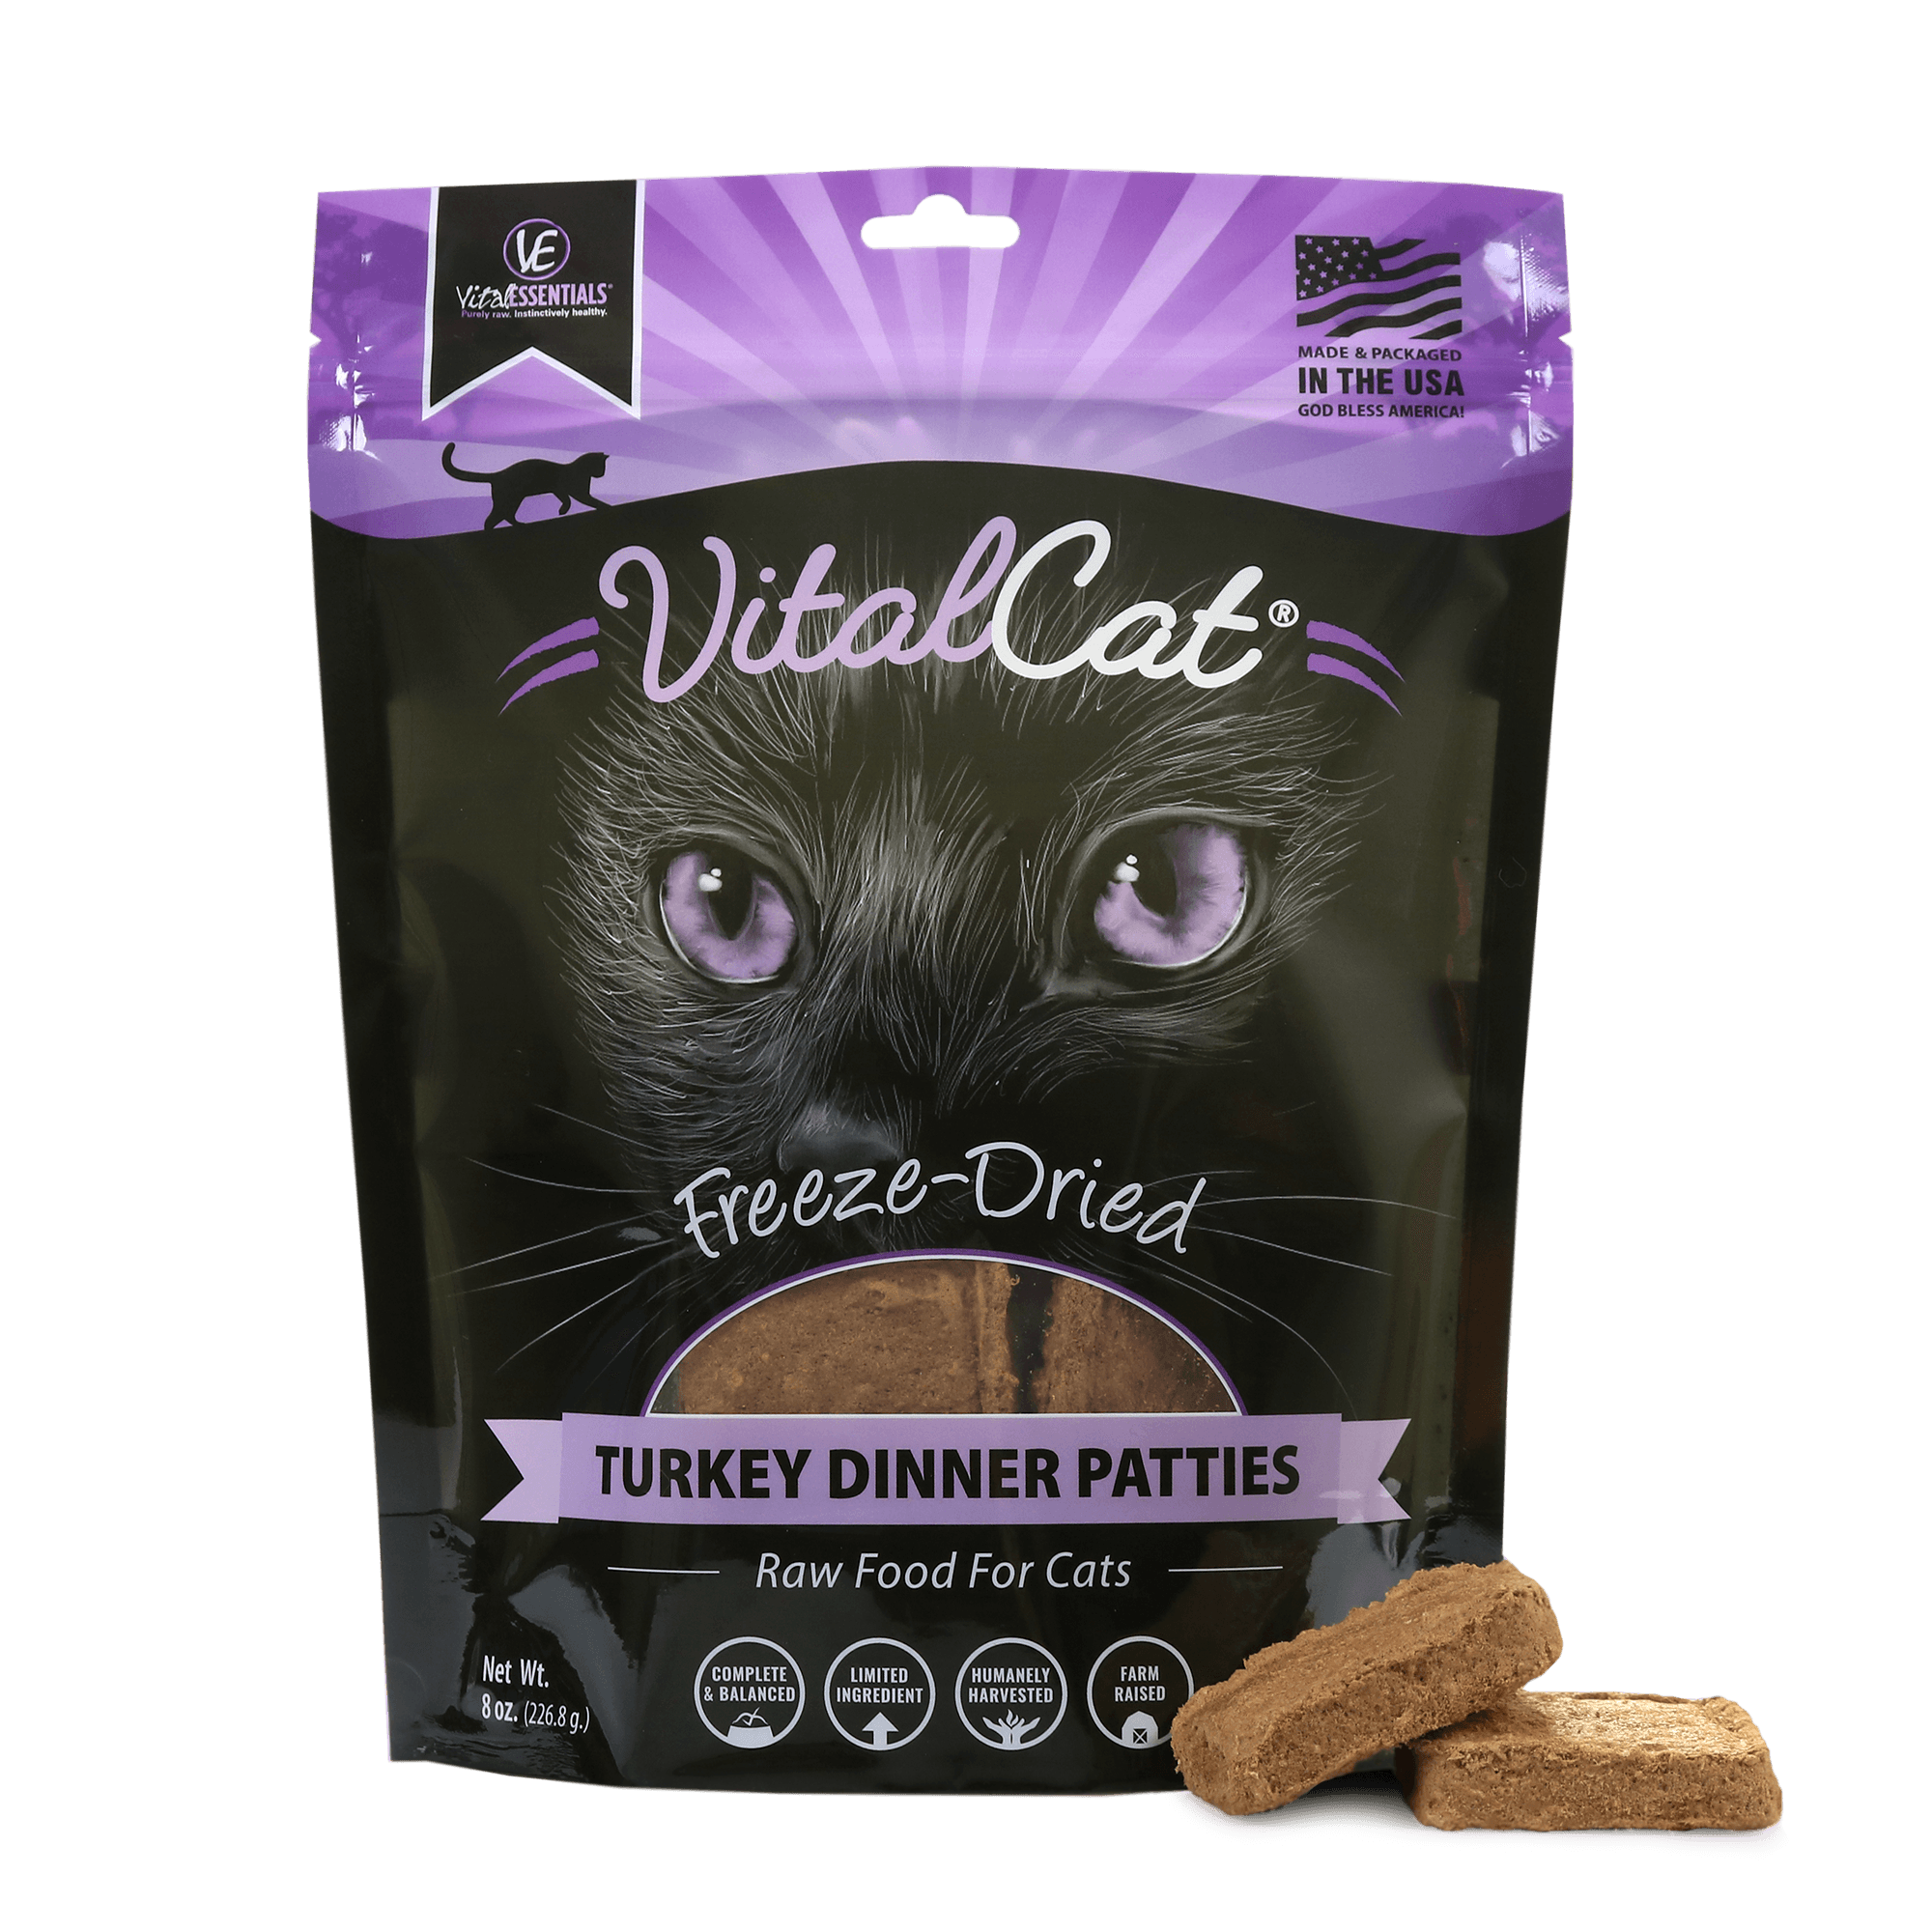 Vital Cat Freeze Dried Dinner Patties Turkey Cat Food